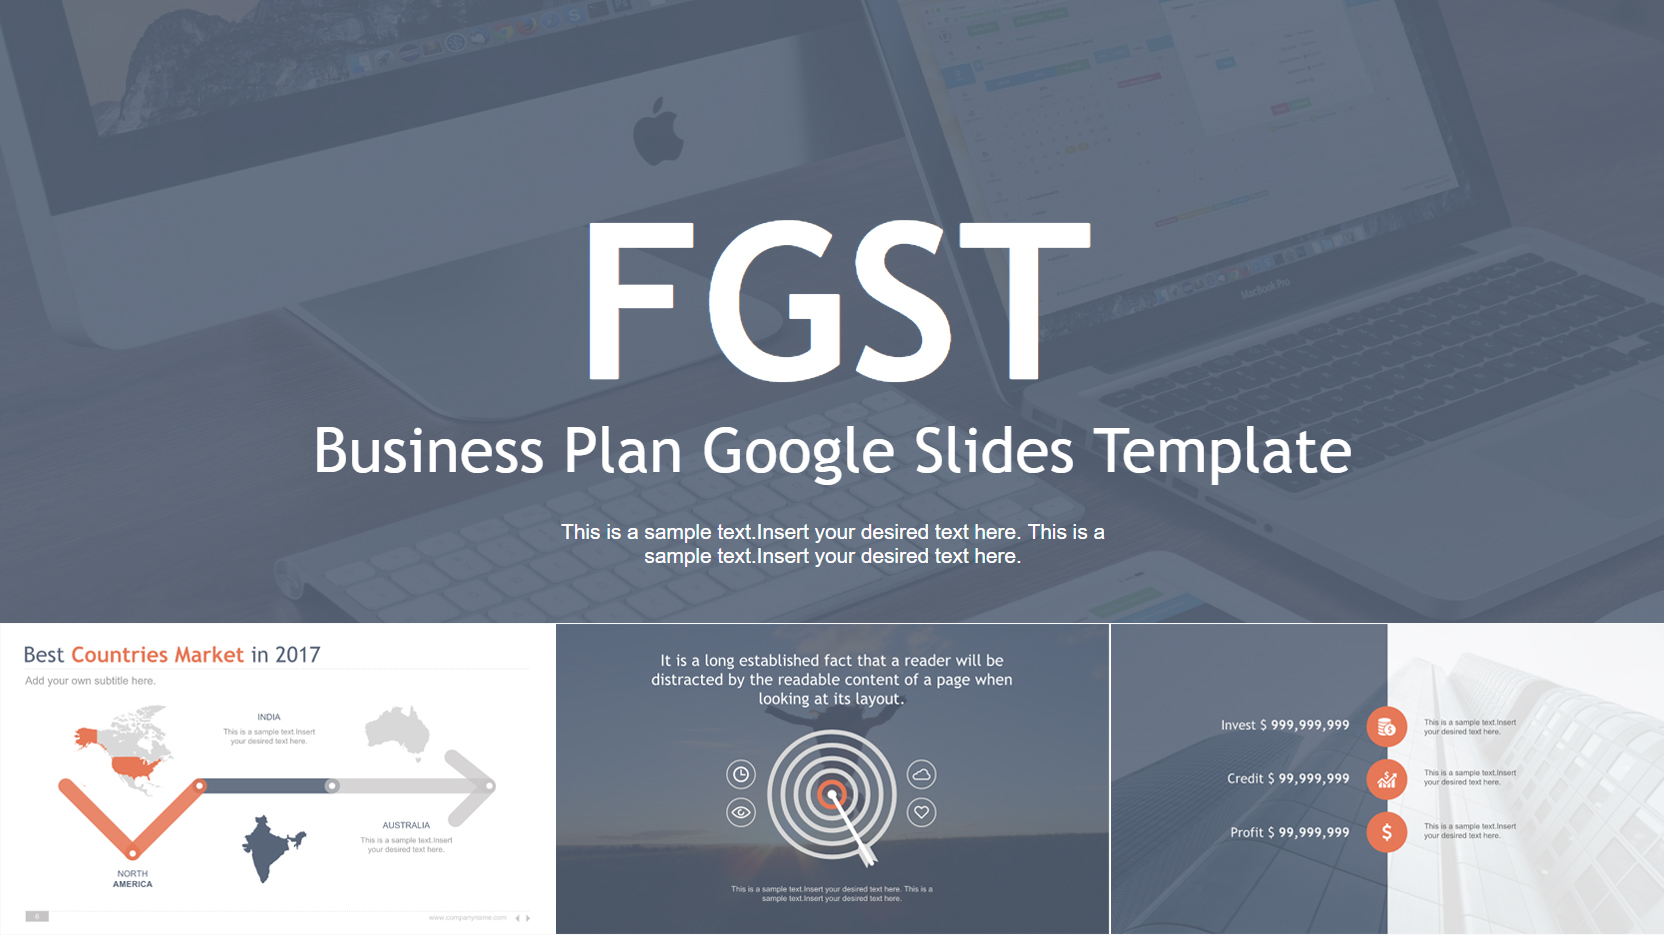 Business Themed Google Slides Templates - The Internet Tips